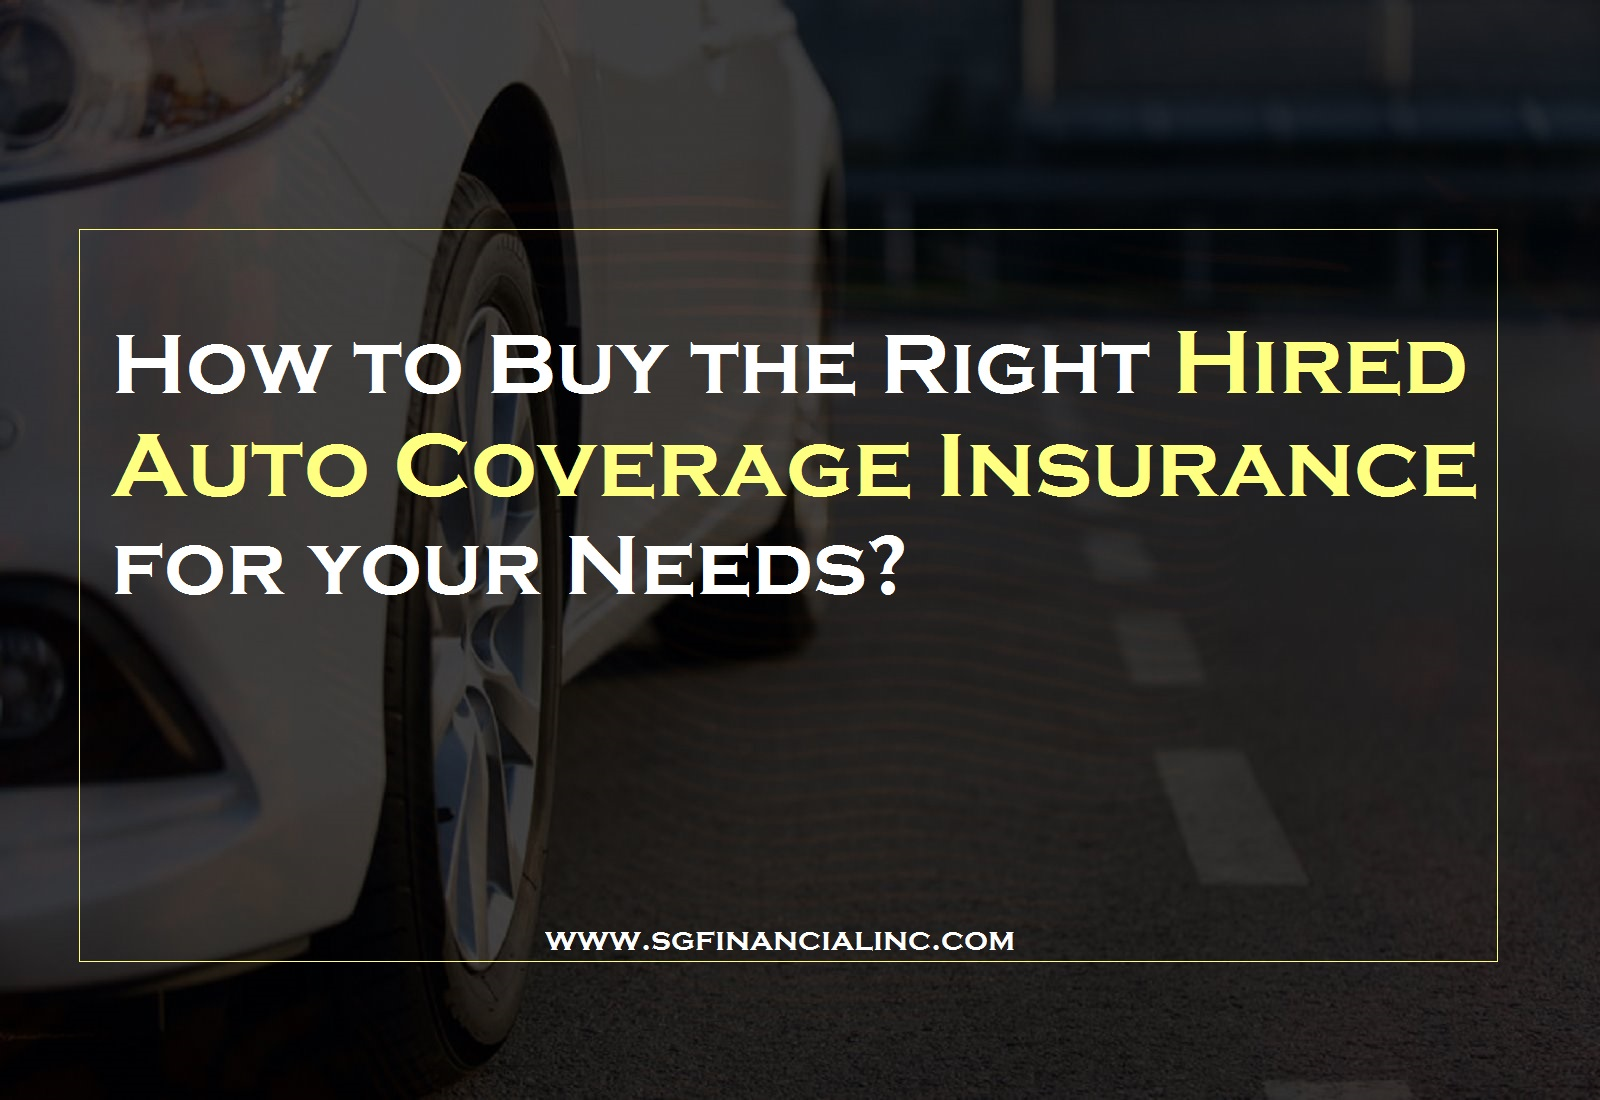 How to Buy the Right Hired Auto Coverage Insurance for your Needs?